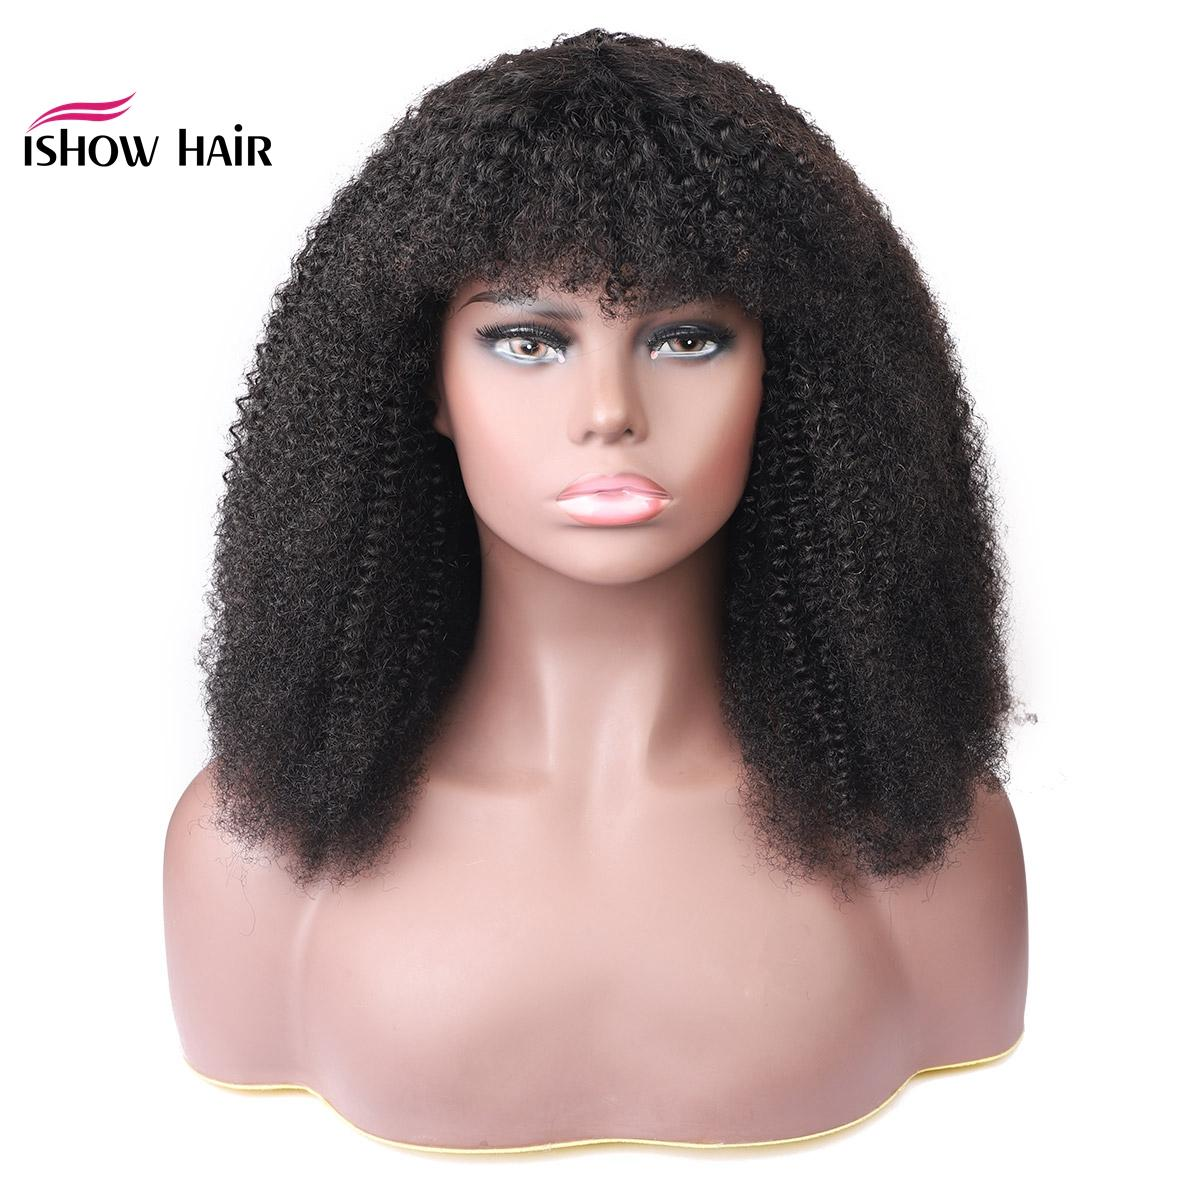 Ishow Body Straight afro Kinky Curly Wig Peruvian Loose Deep Human Hair Wigs With Bangs Water Human Hair None Lace Wigs